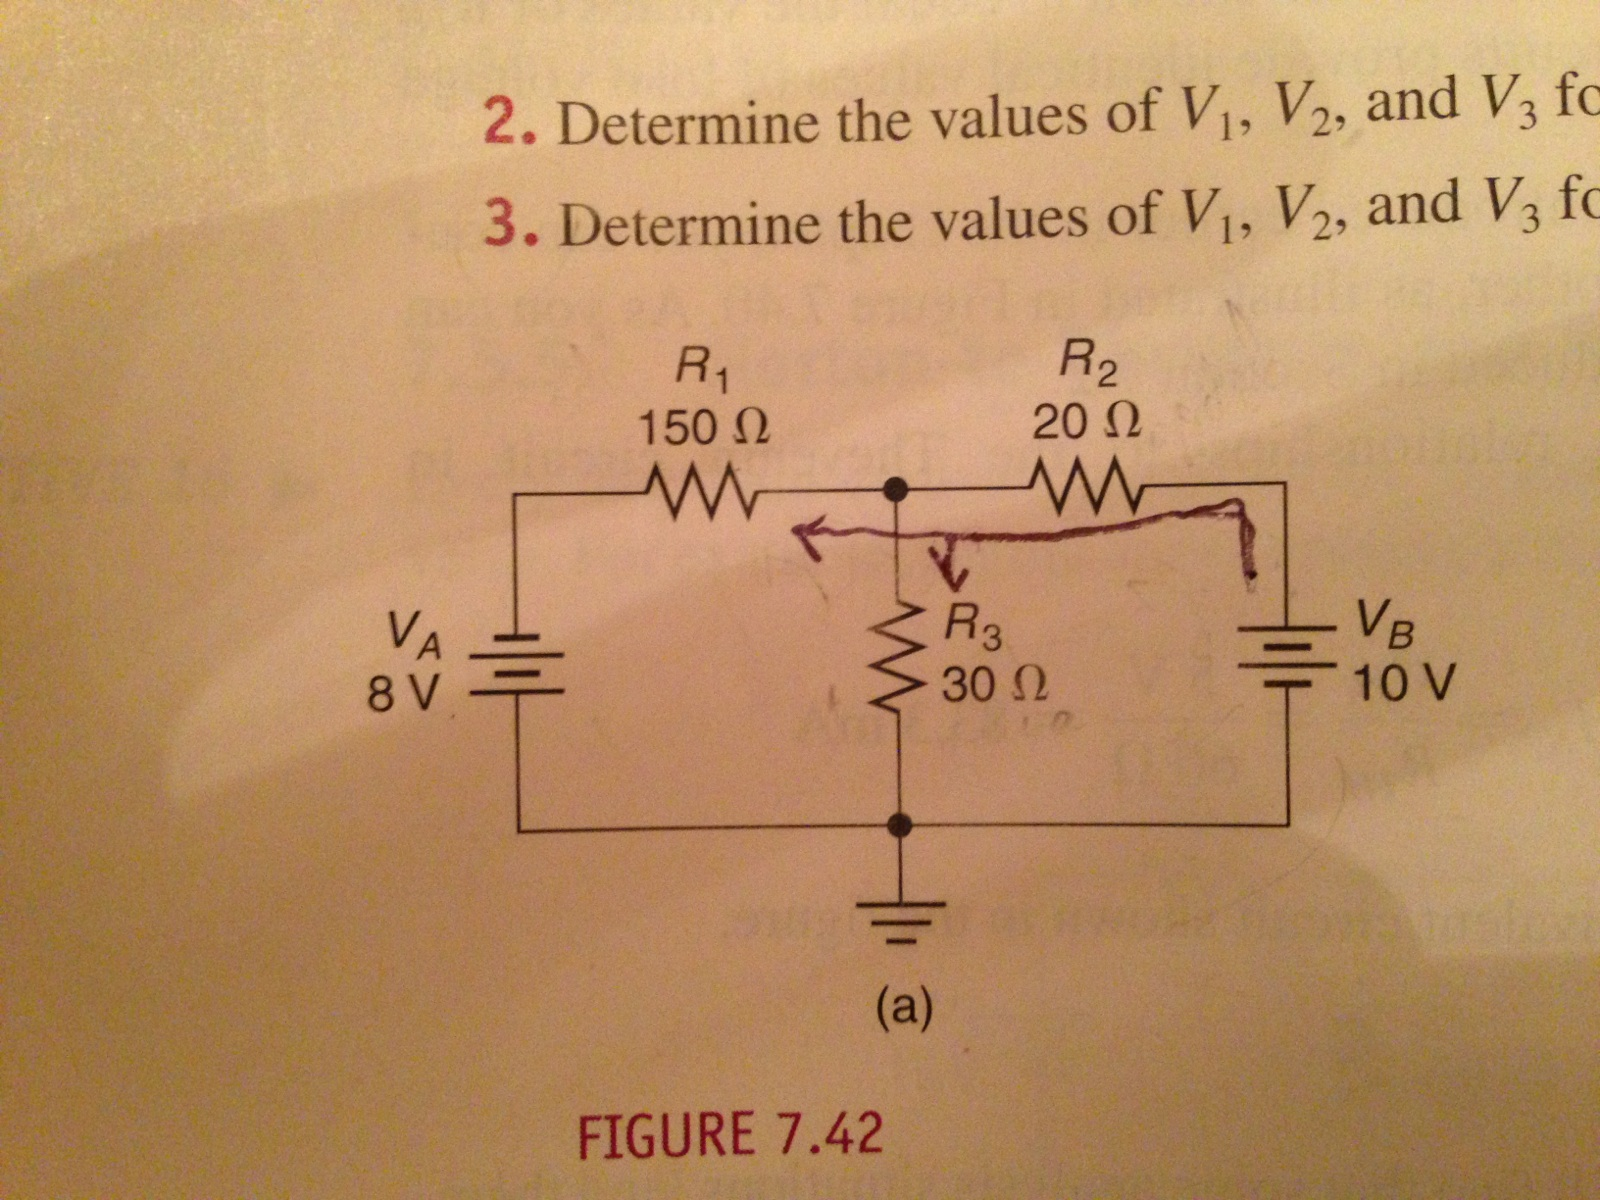 Determine the values of V1, V2, and V3 for the cir